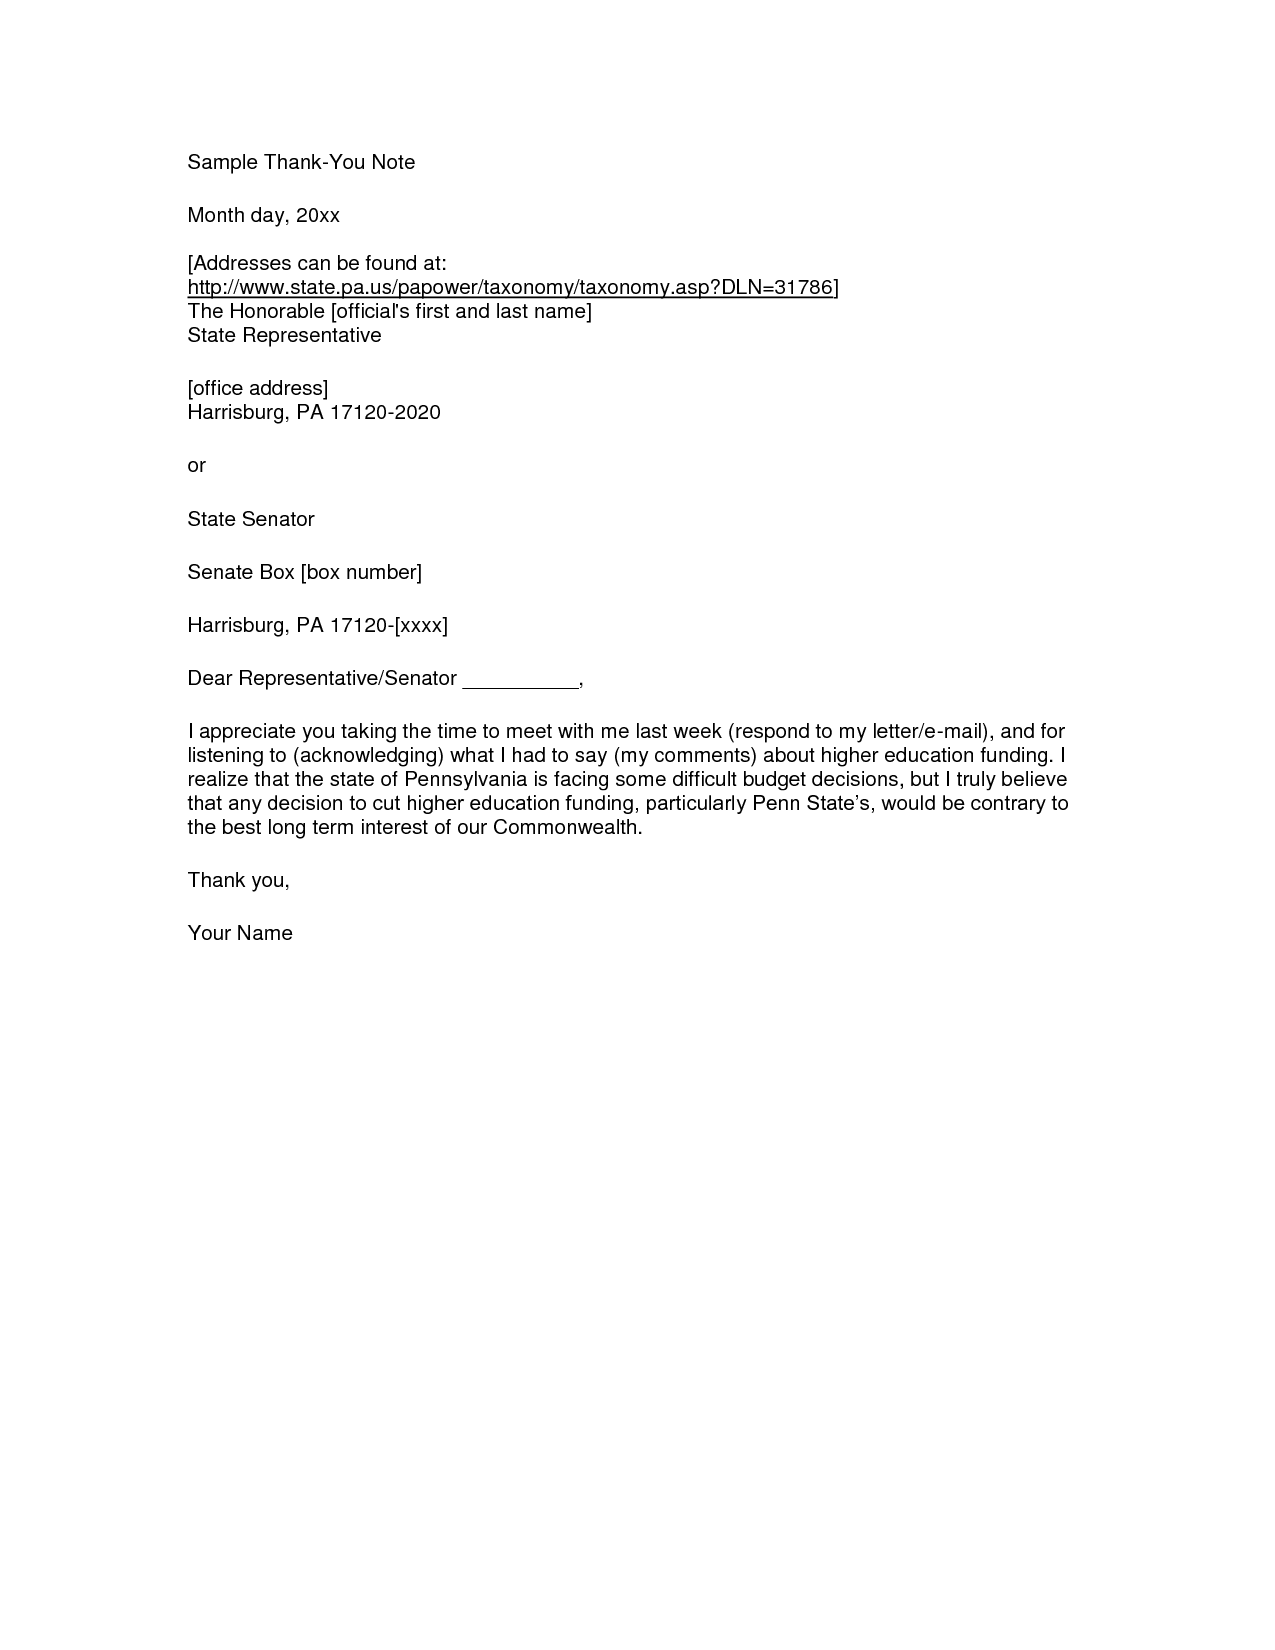 Email Letter Sample Formal Business Writing Official Template Thank